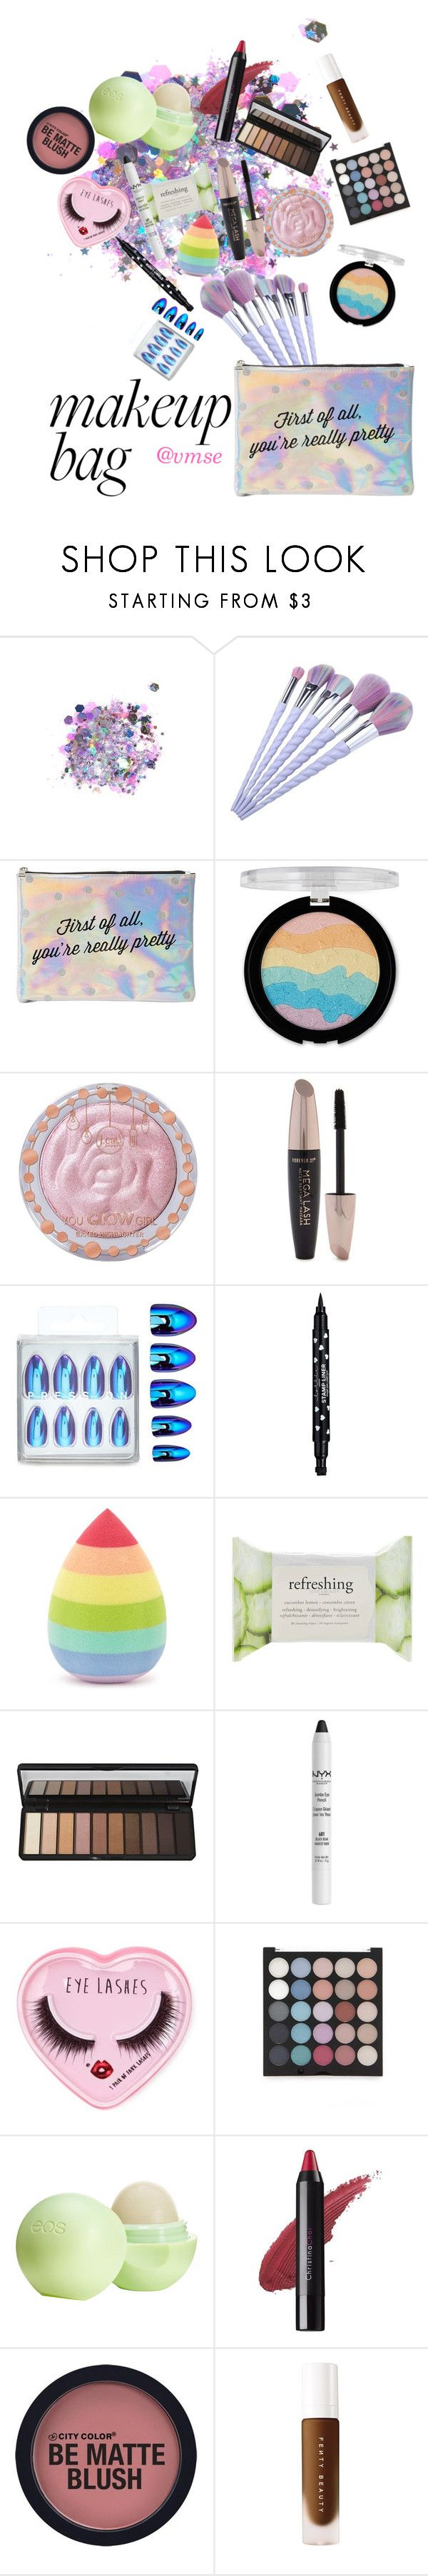 """""""My Makeup Bag"""" by vmse on Polyvore featuring beauty, The Gypsy Shrine, Charlotte Russe, Forever 21, Eos, Christina Choi Cosmetics and makeupbag"""